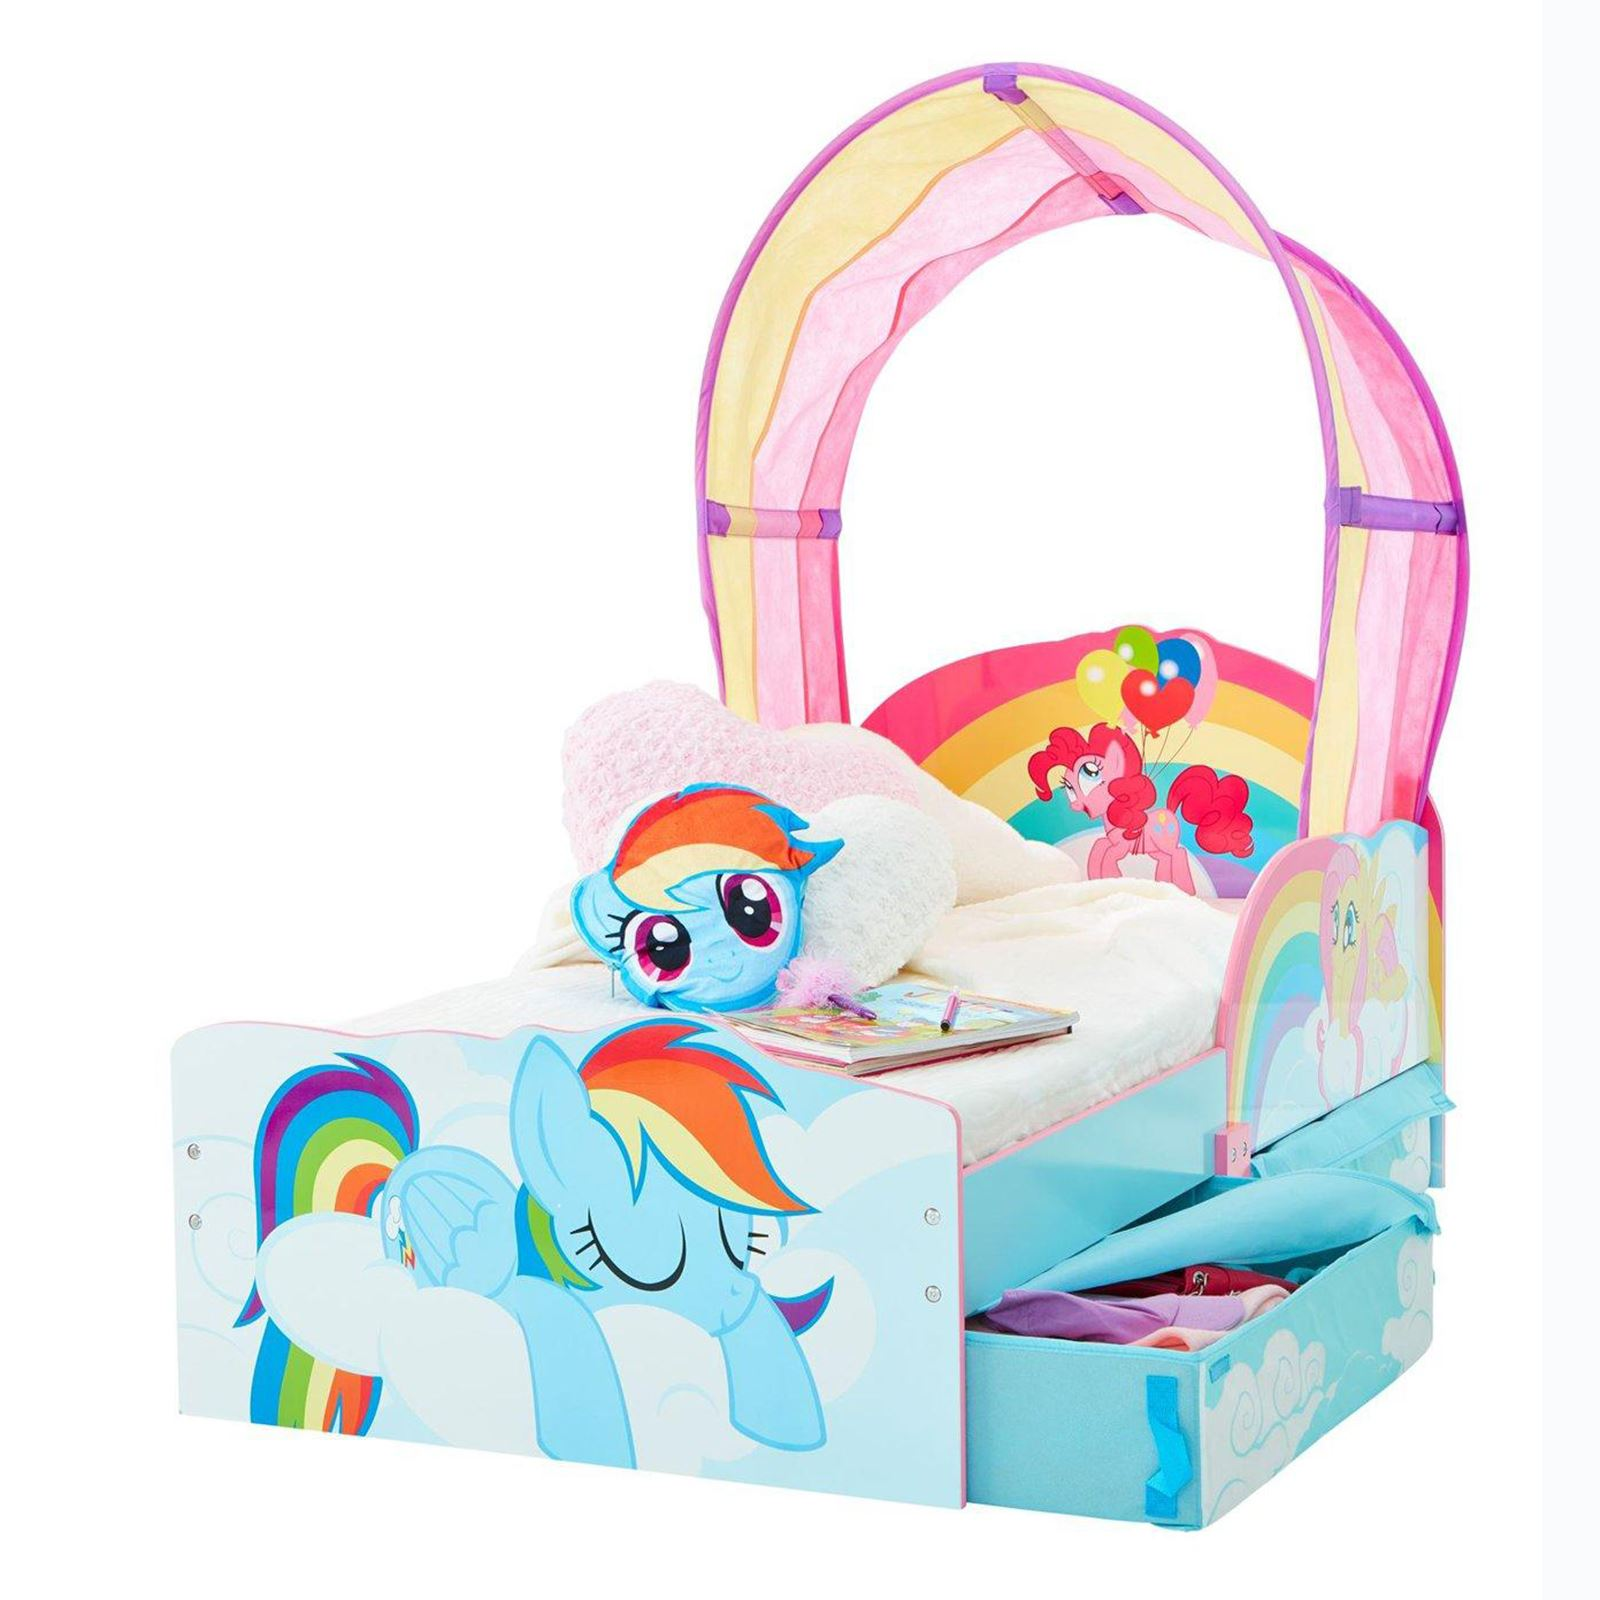 my little pony kleinkind junior bett mit unterbett aufbewahrung und regenbogen ebay. Black Bedroom Furniture Sets. Home Design Ideas